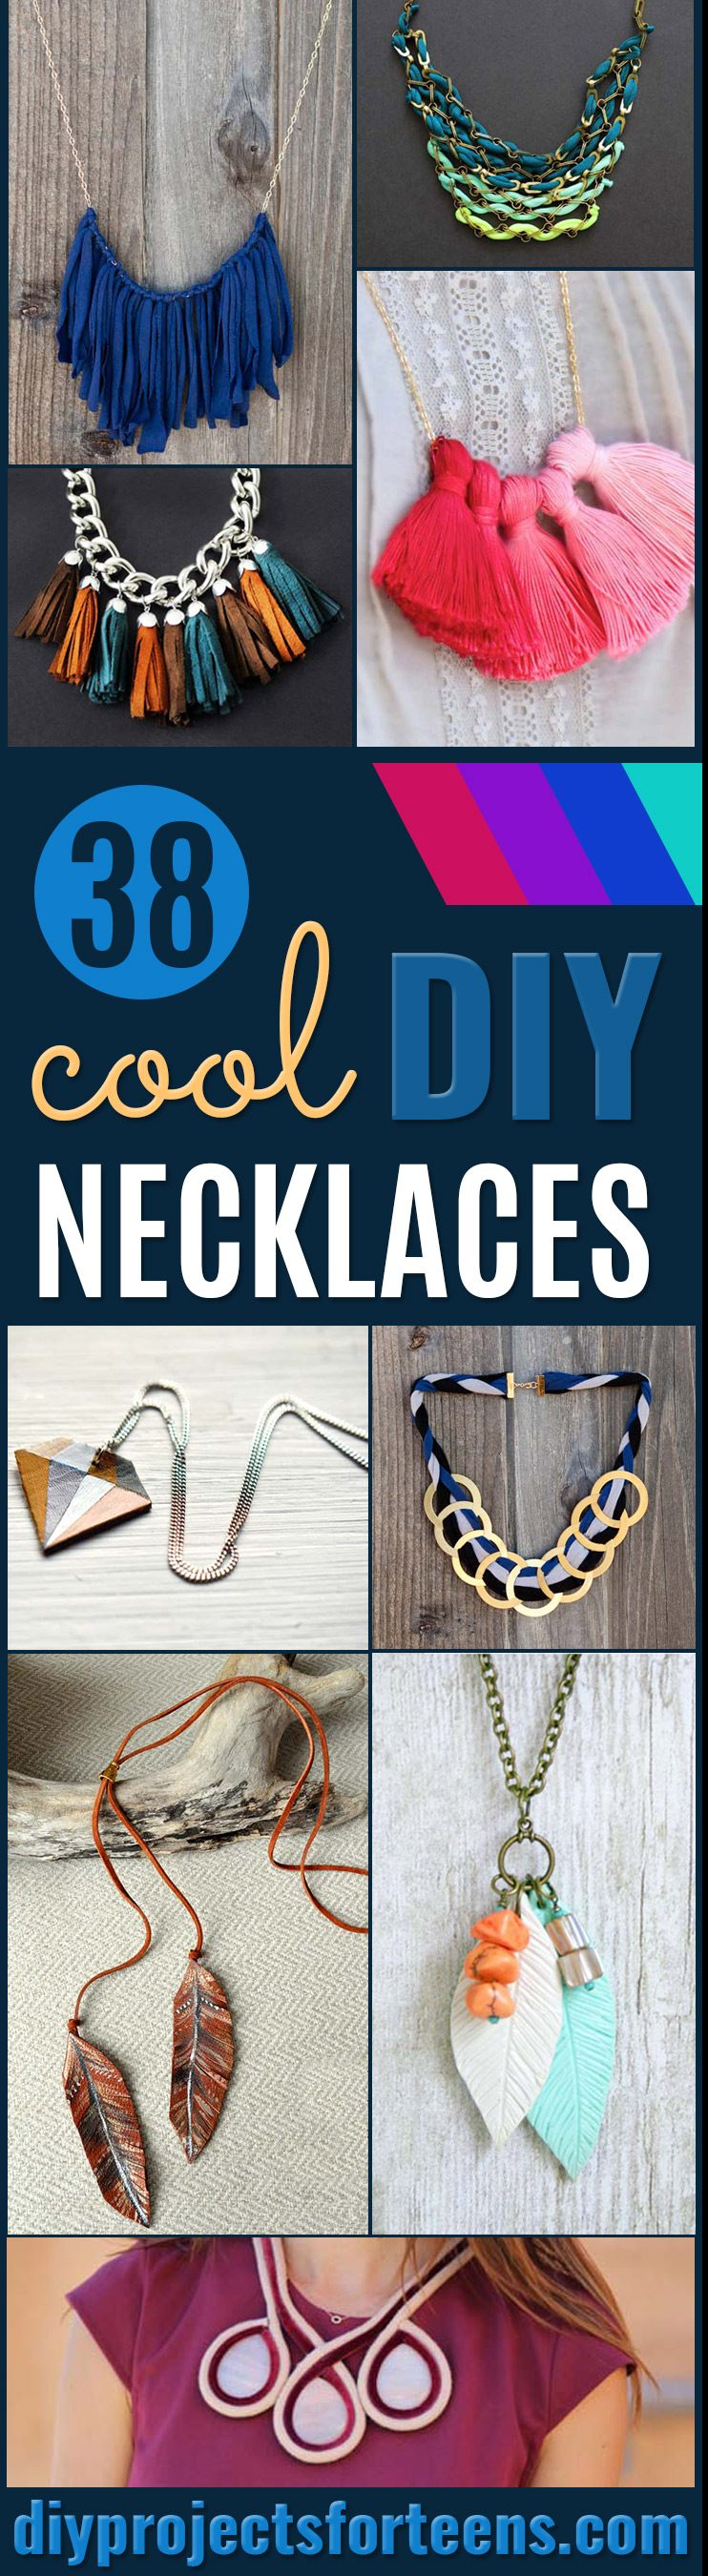 DIY Necklace Ideas - Pendant, Beads, Statement, Choker, Layered Boho, Chain and Simple Looks - Creative Jewlery Making Ideas for Women and Teens, Girls - Crafts and Cool Fashion Ideas for Teenagers